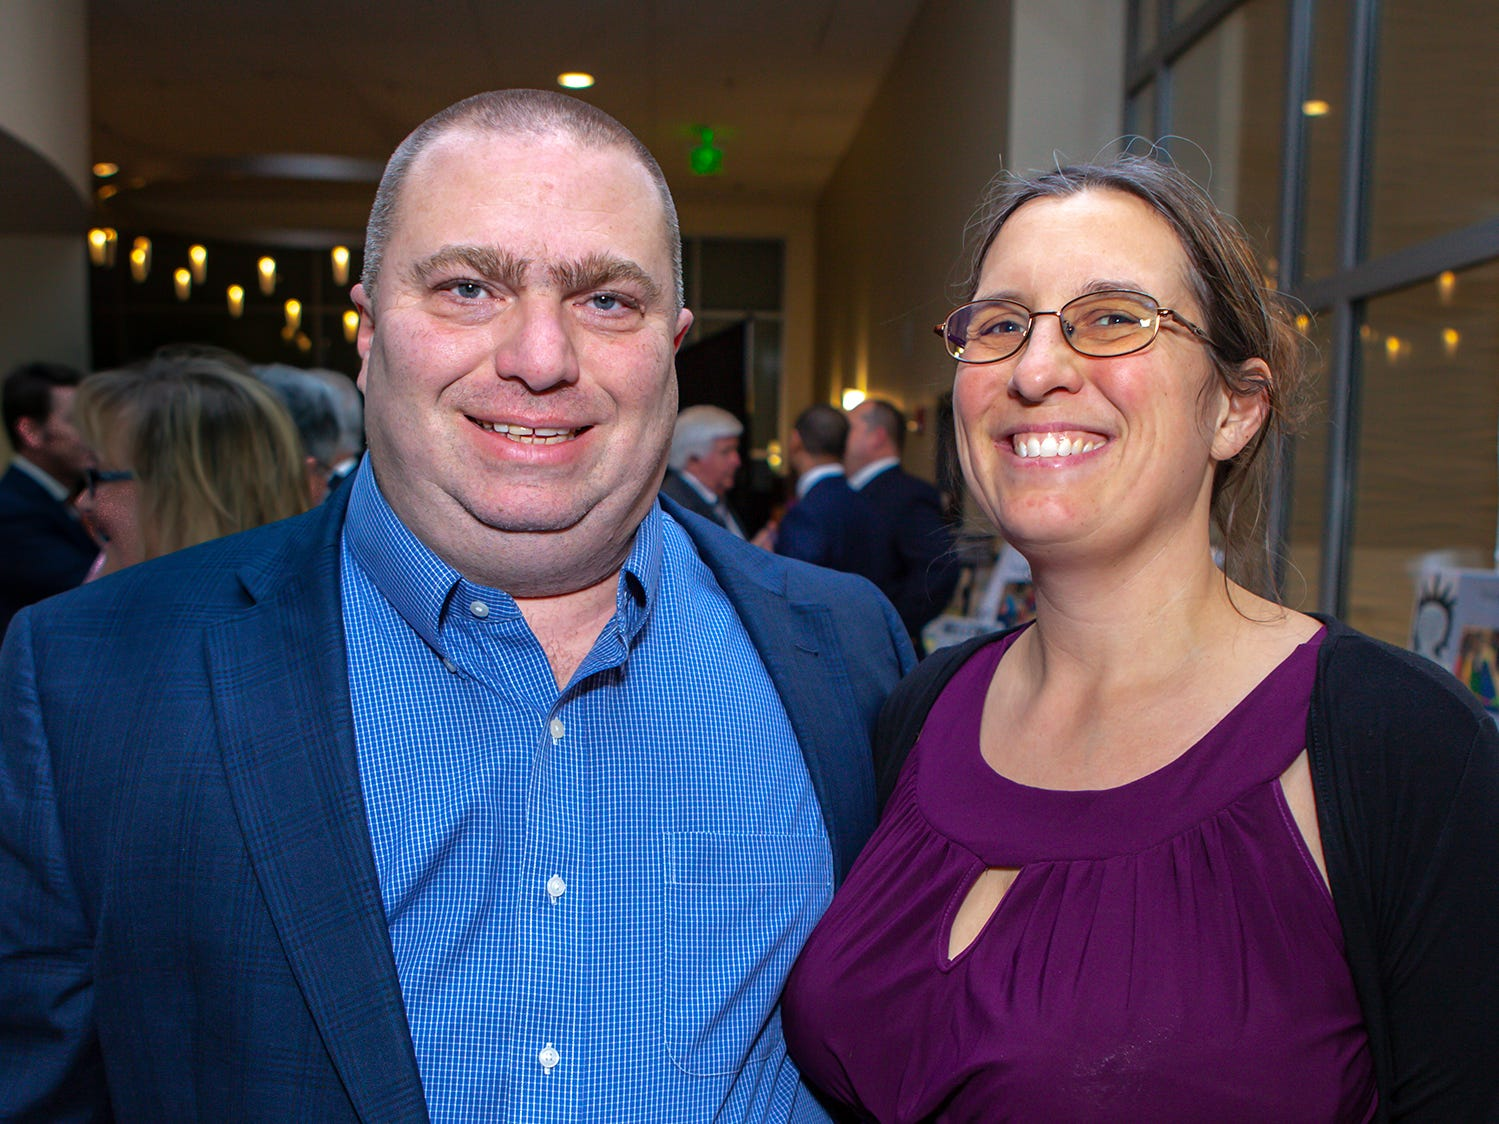 David and Maria Coggin  at the 2019 Excellence in Education Gala, hosted by the City Schools Foundation on Friday, Jan. 25, 2019 at Stones River Country Club in Murfreesboro.